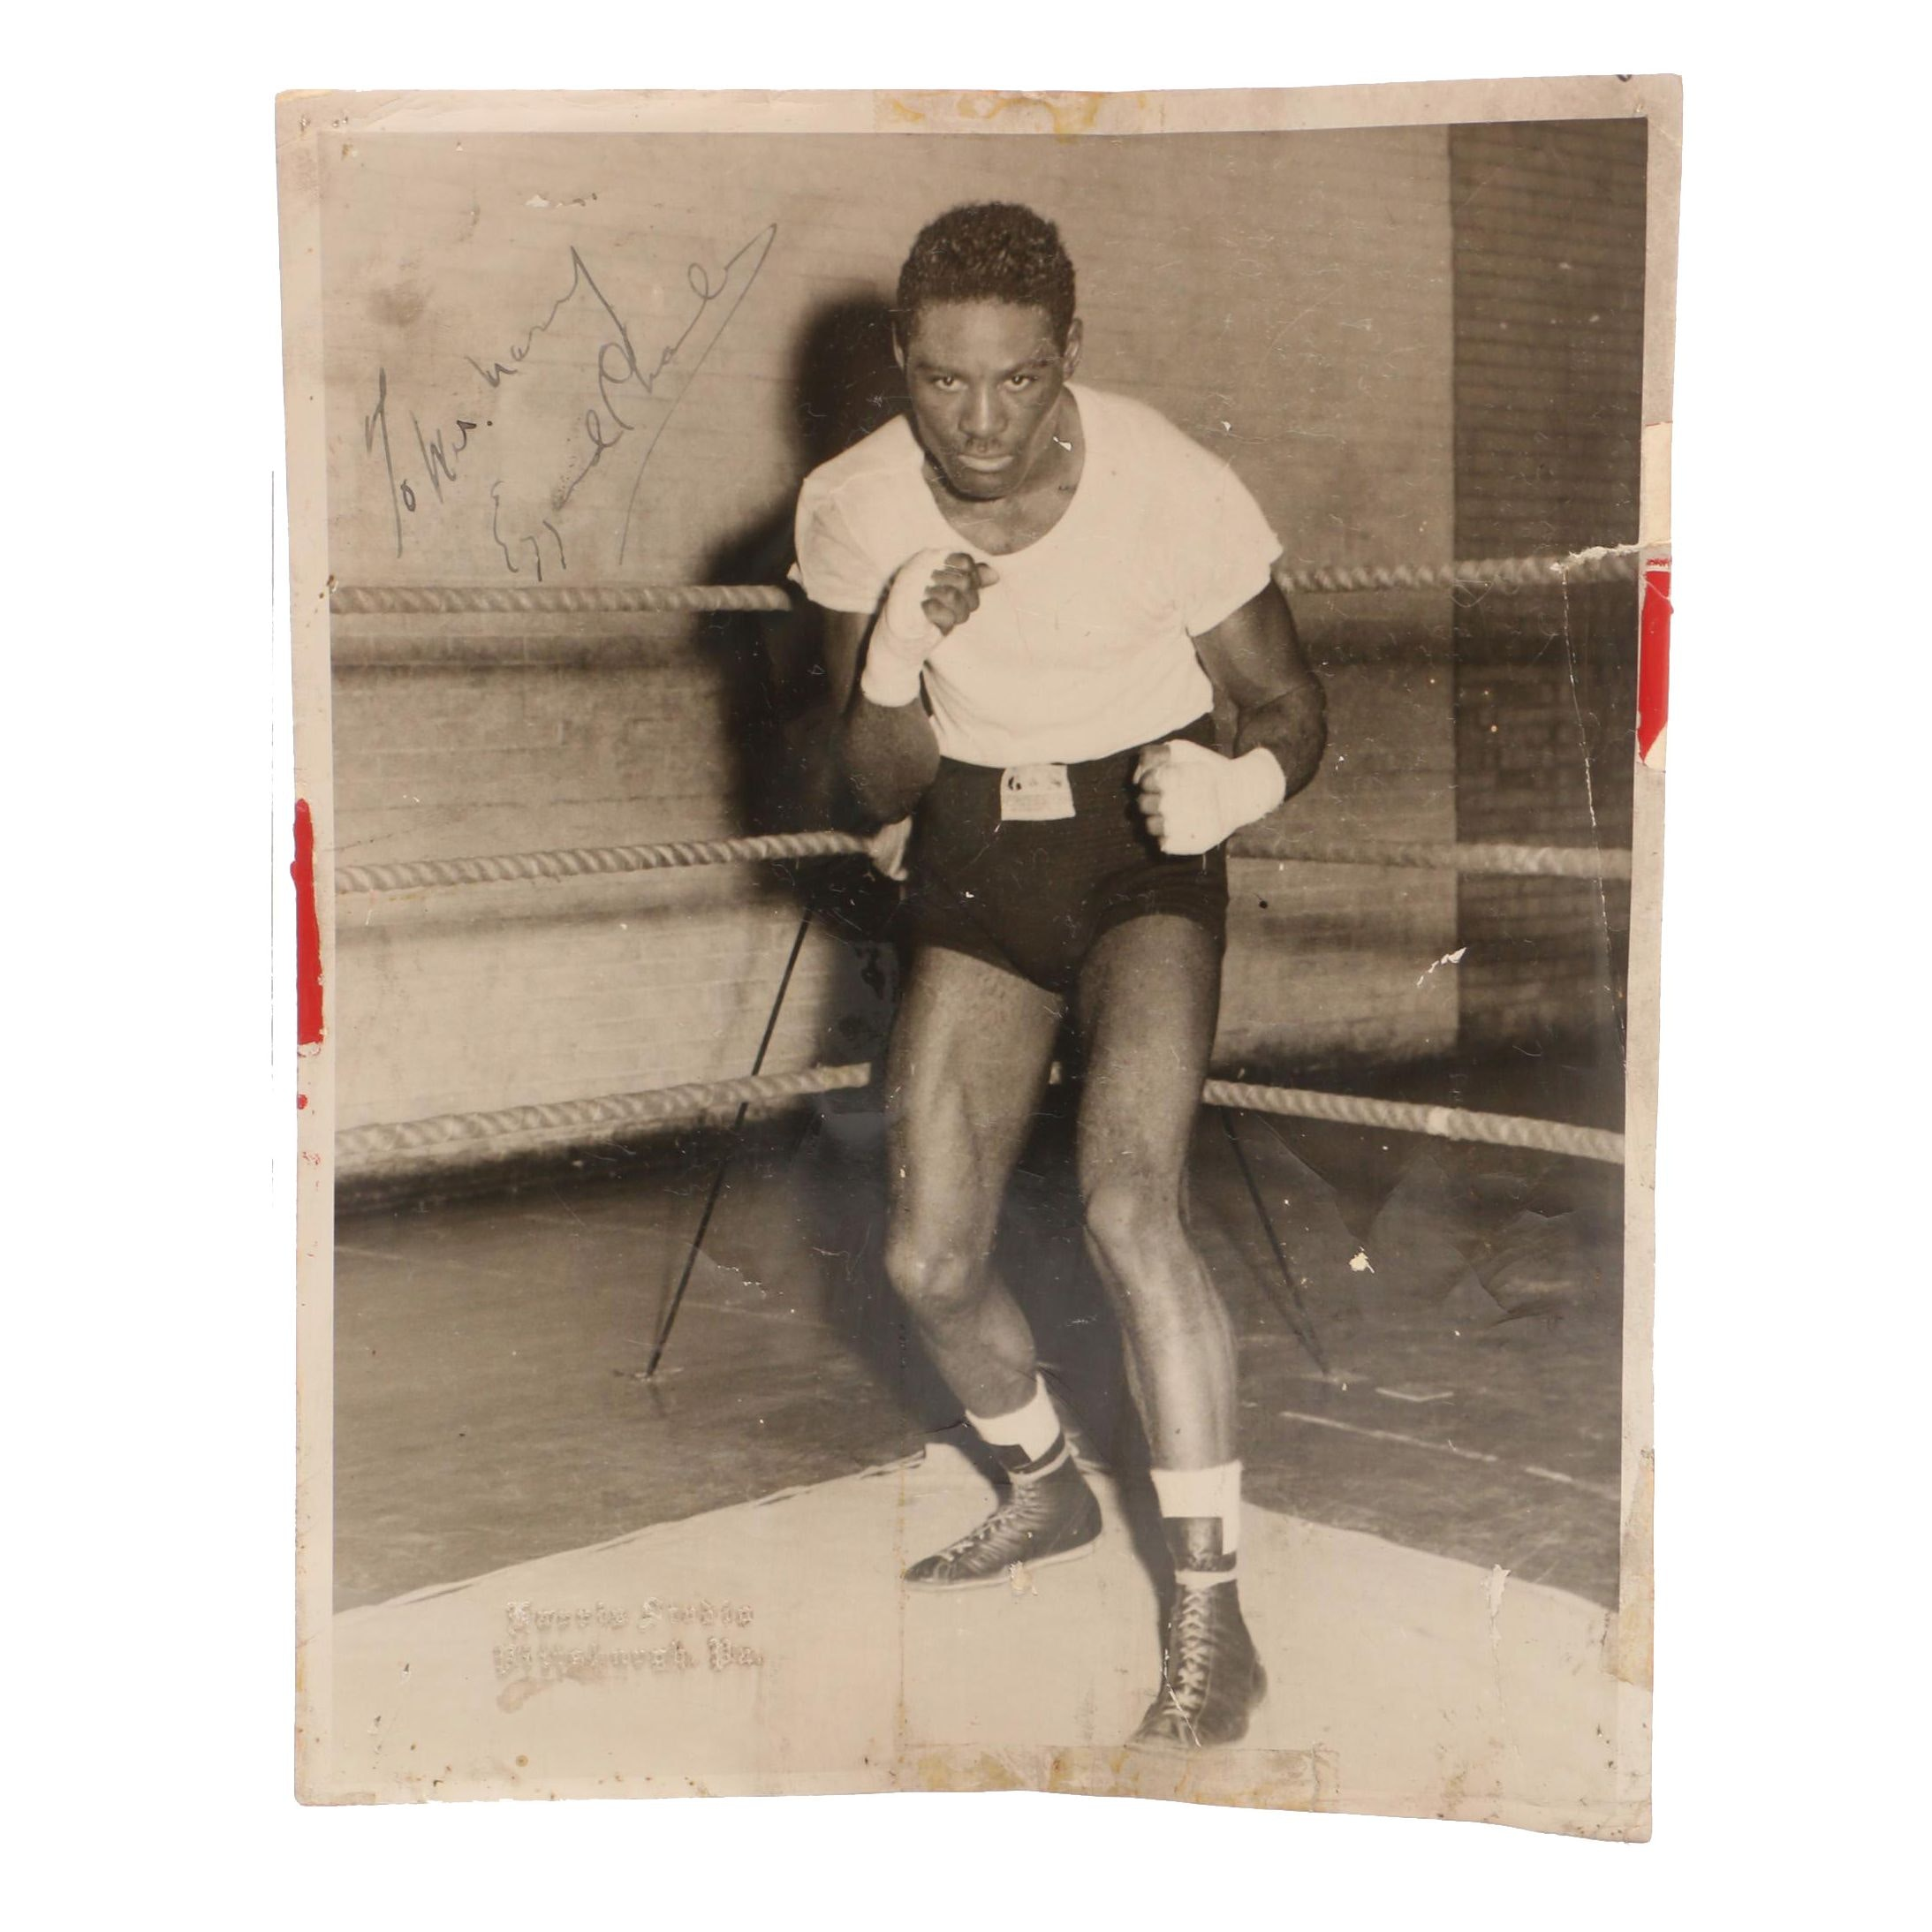 1940s-1950s Ezzard Charles Signed Boxing Photograph